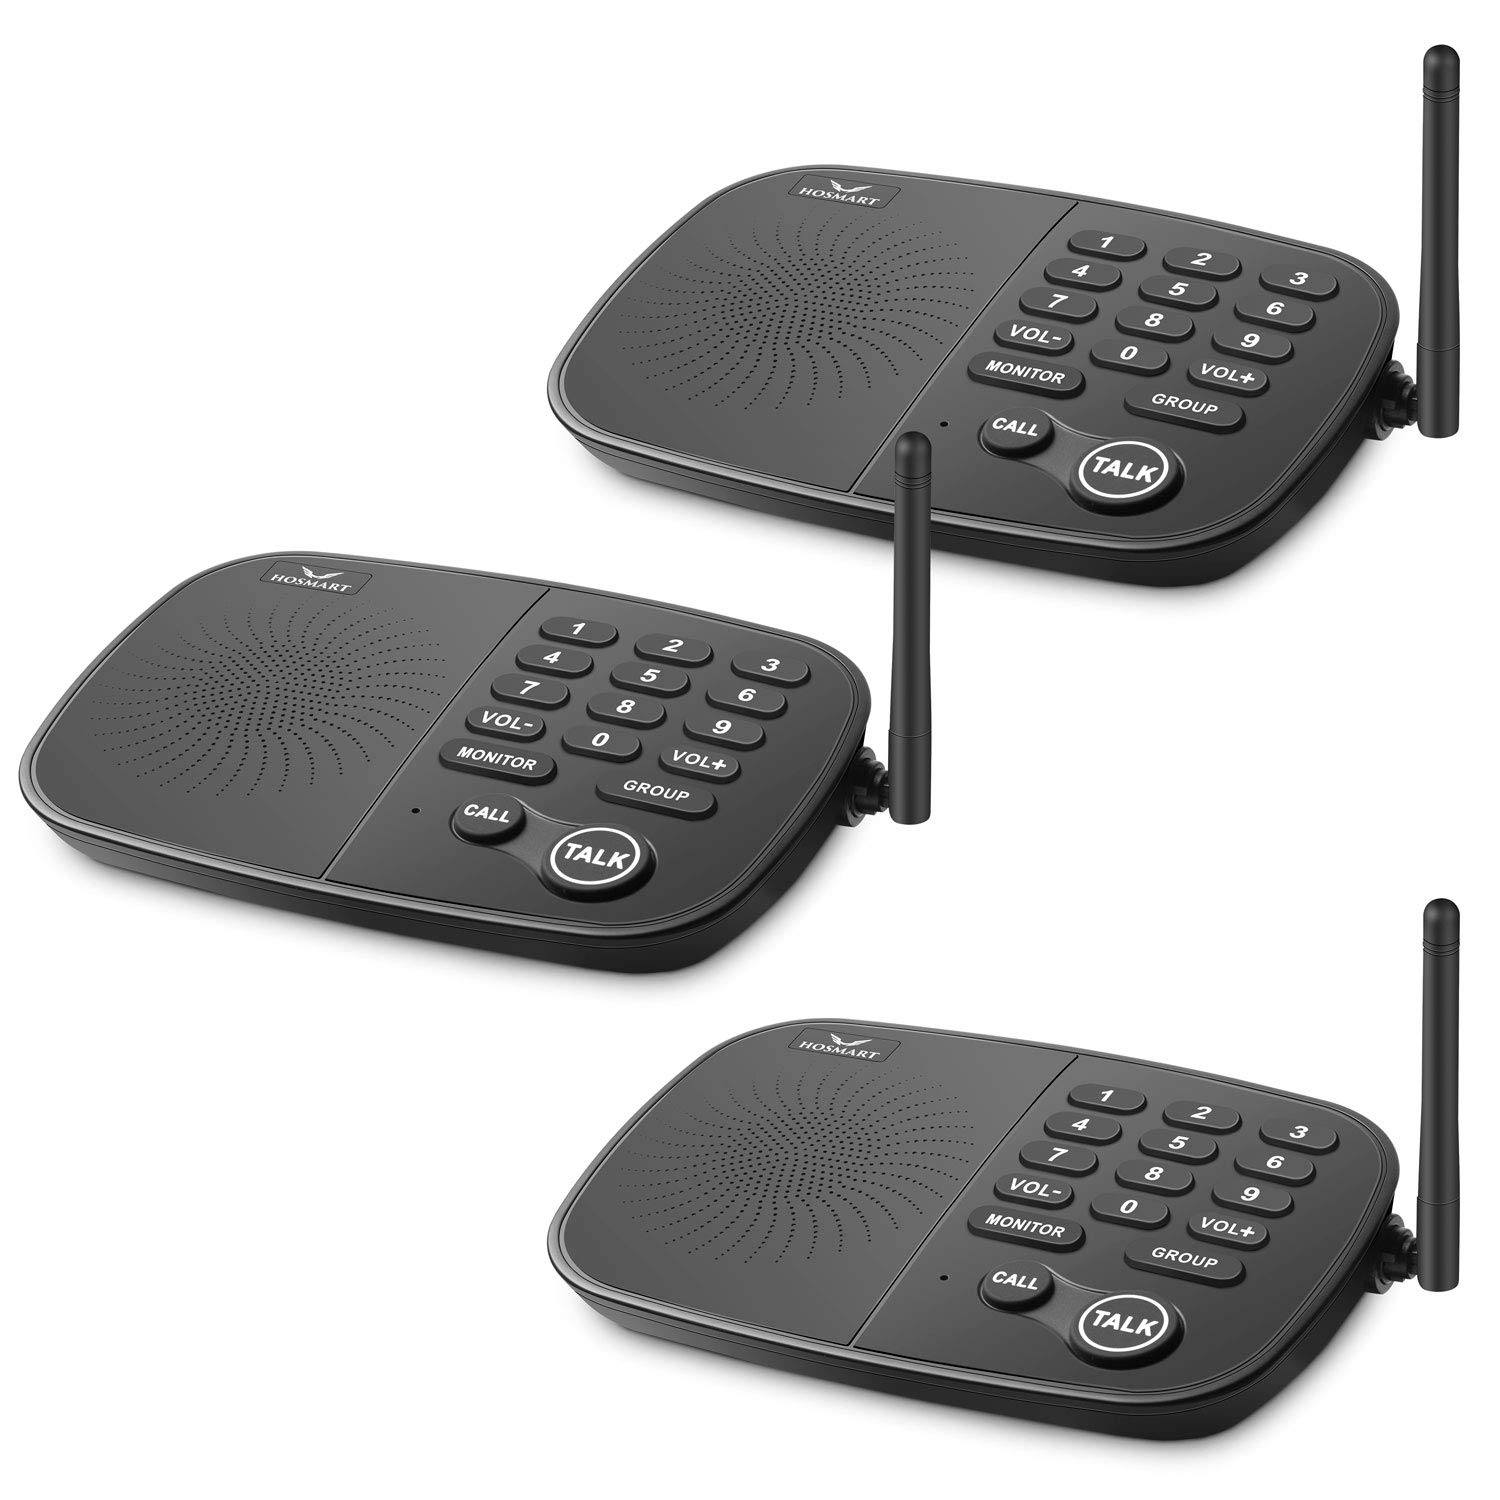 Hosmart 1/2 Mile Long Range 10-Channel Security Wireless Intercom System for Home or Office[3 Units Black]